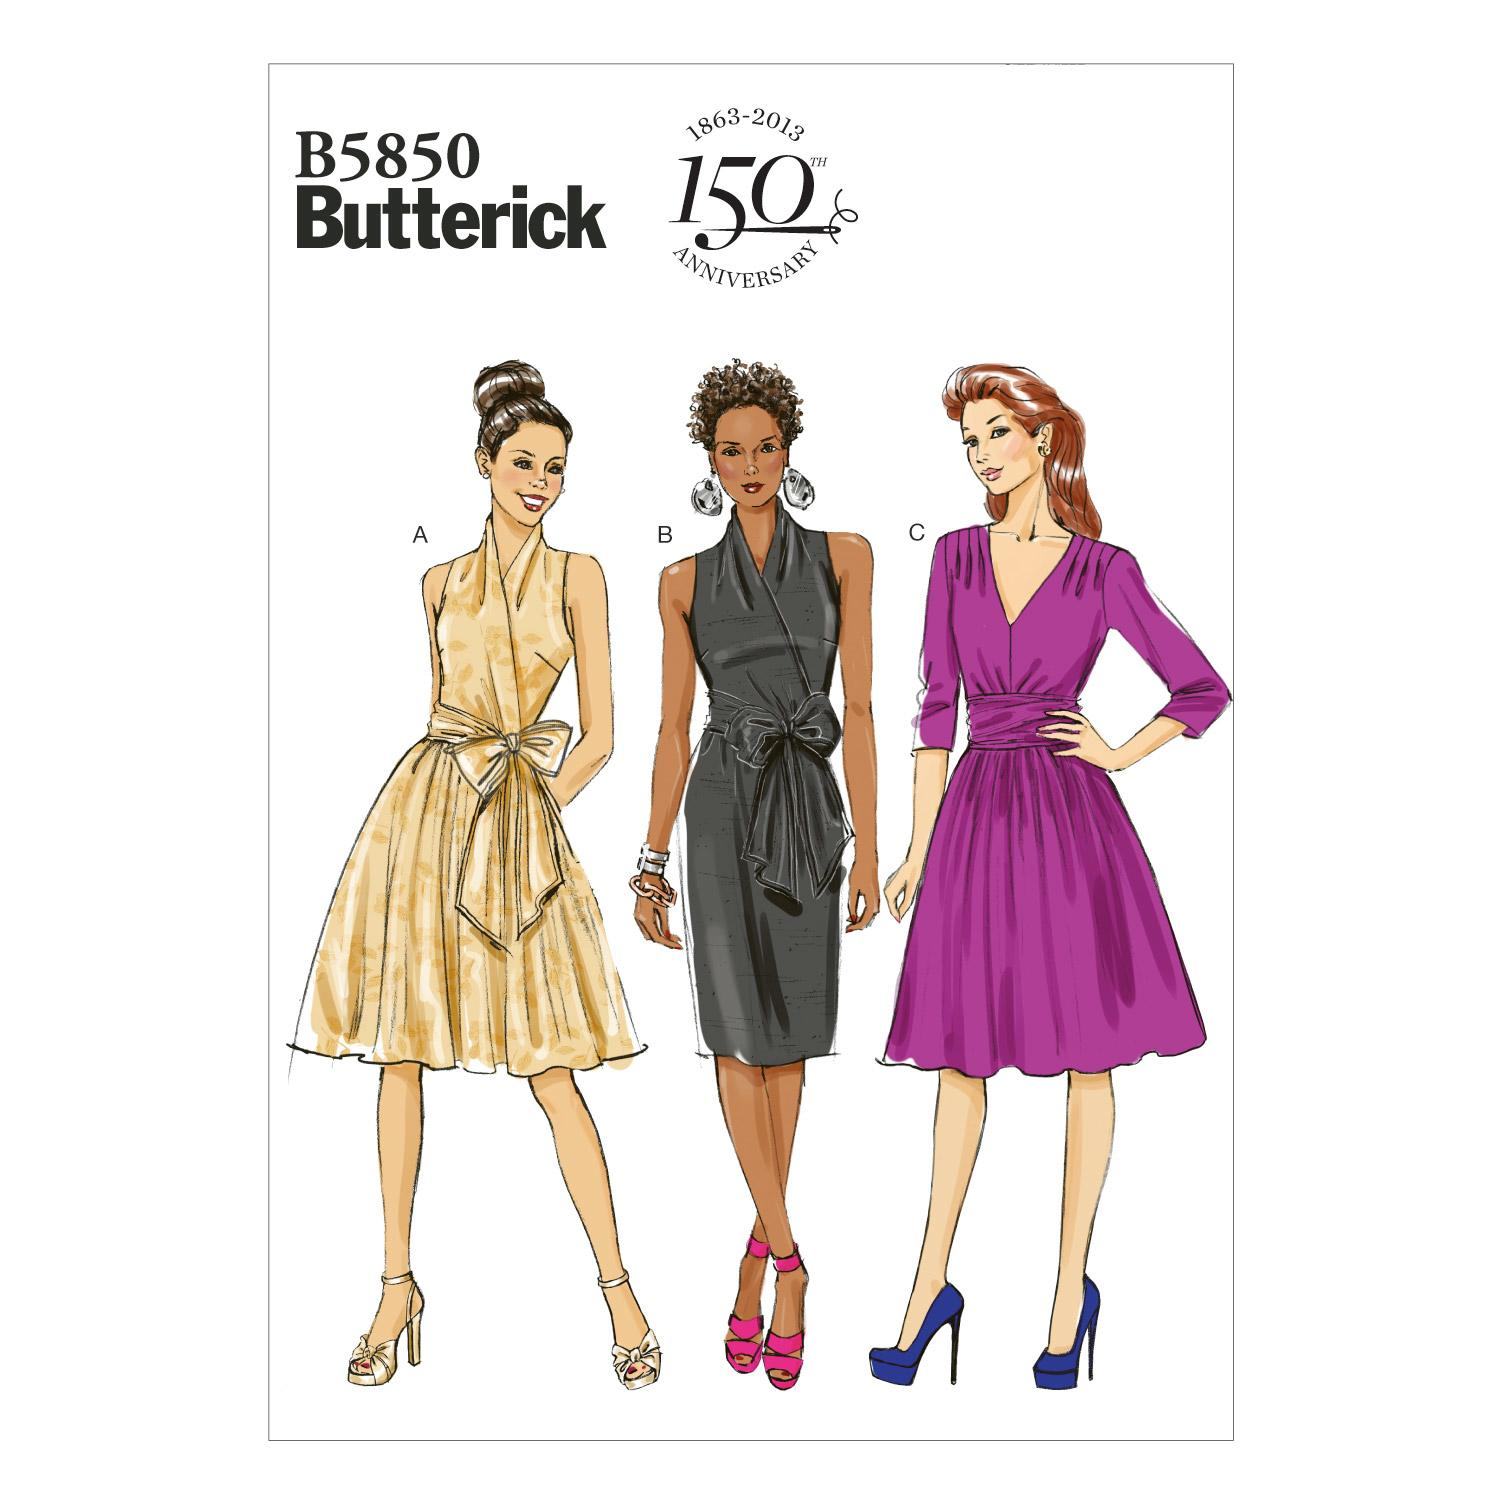 Butterick B5850 Misses' Dress